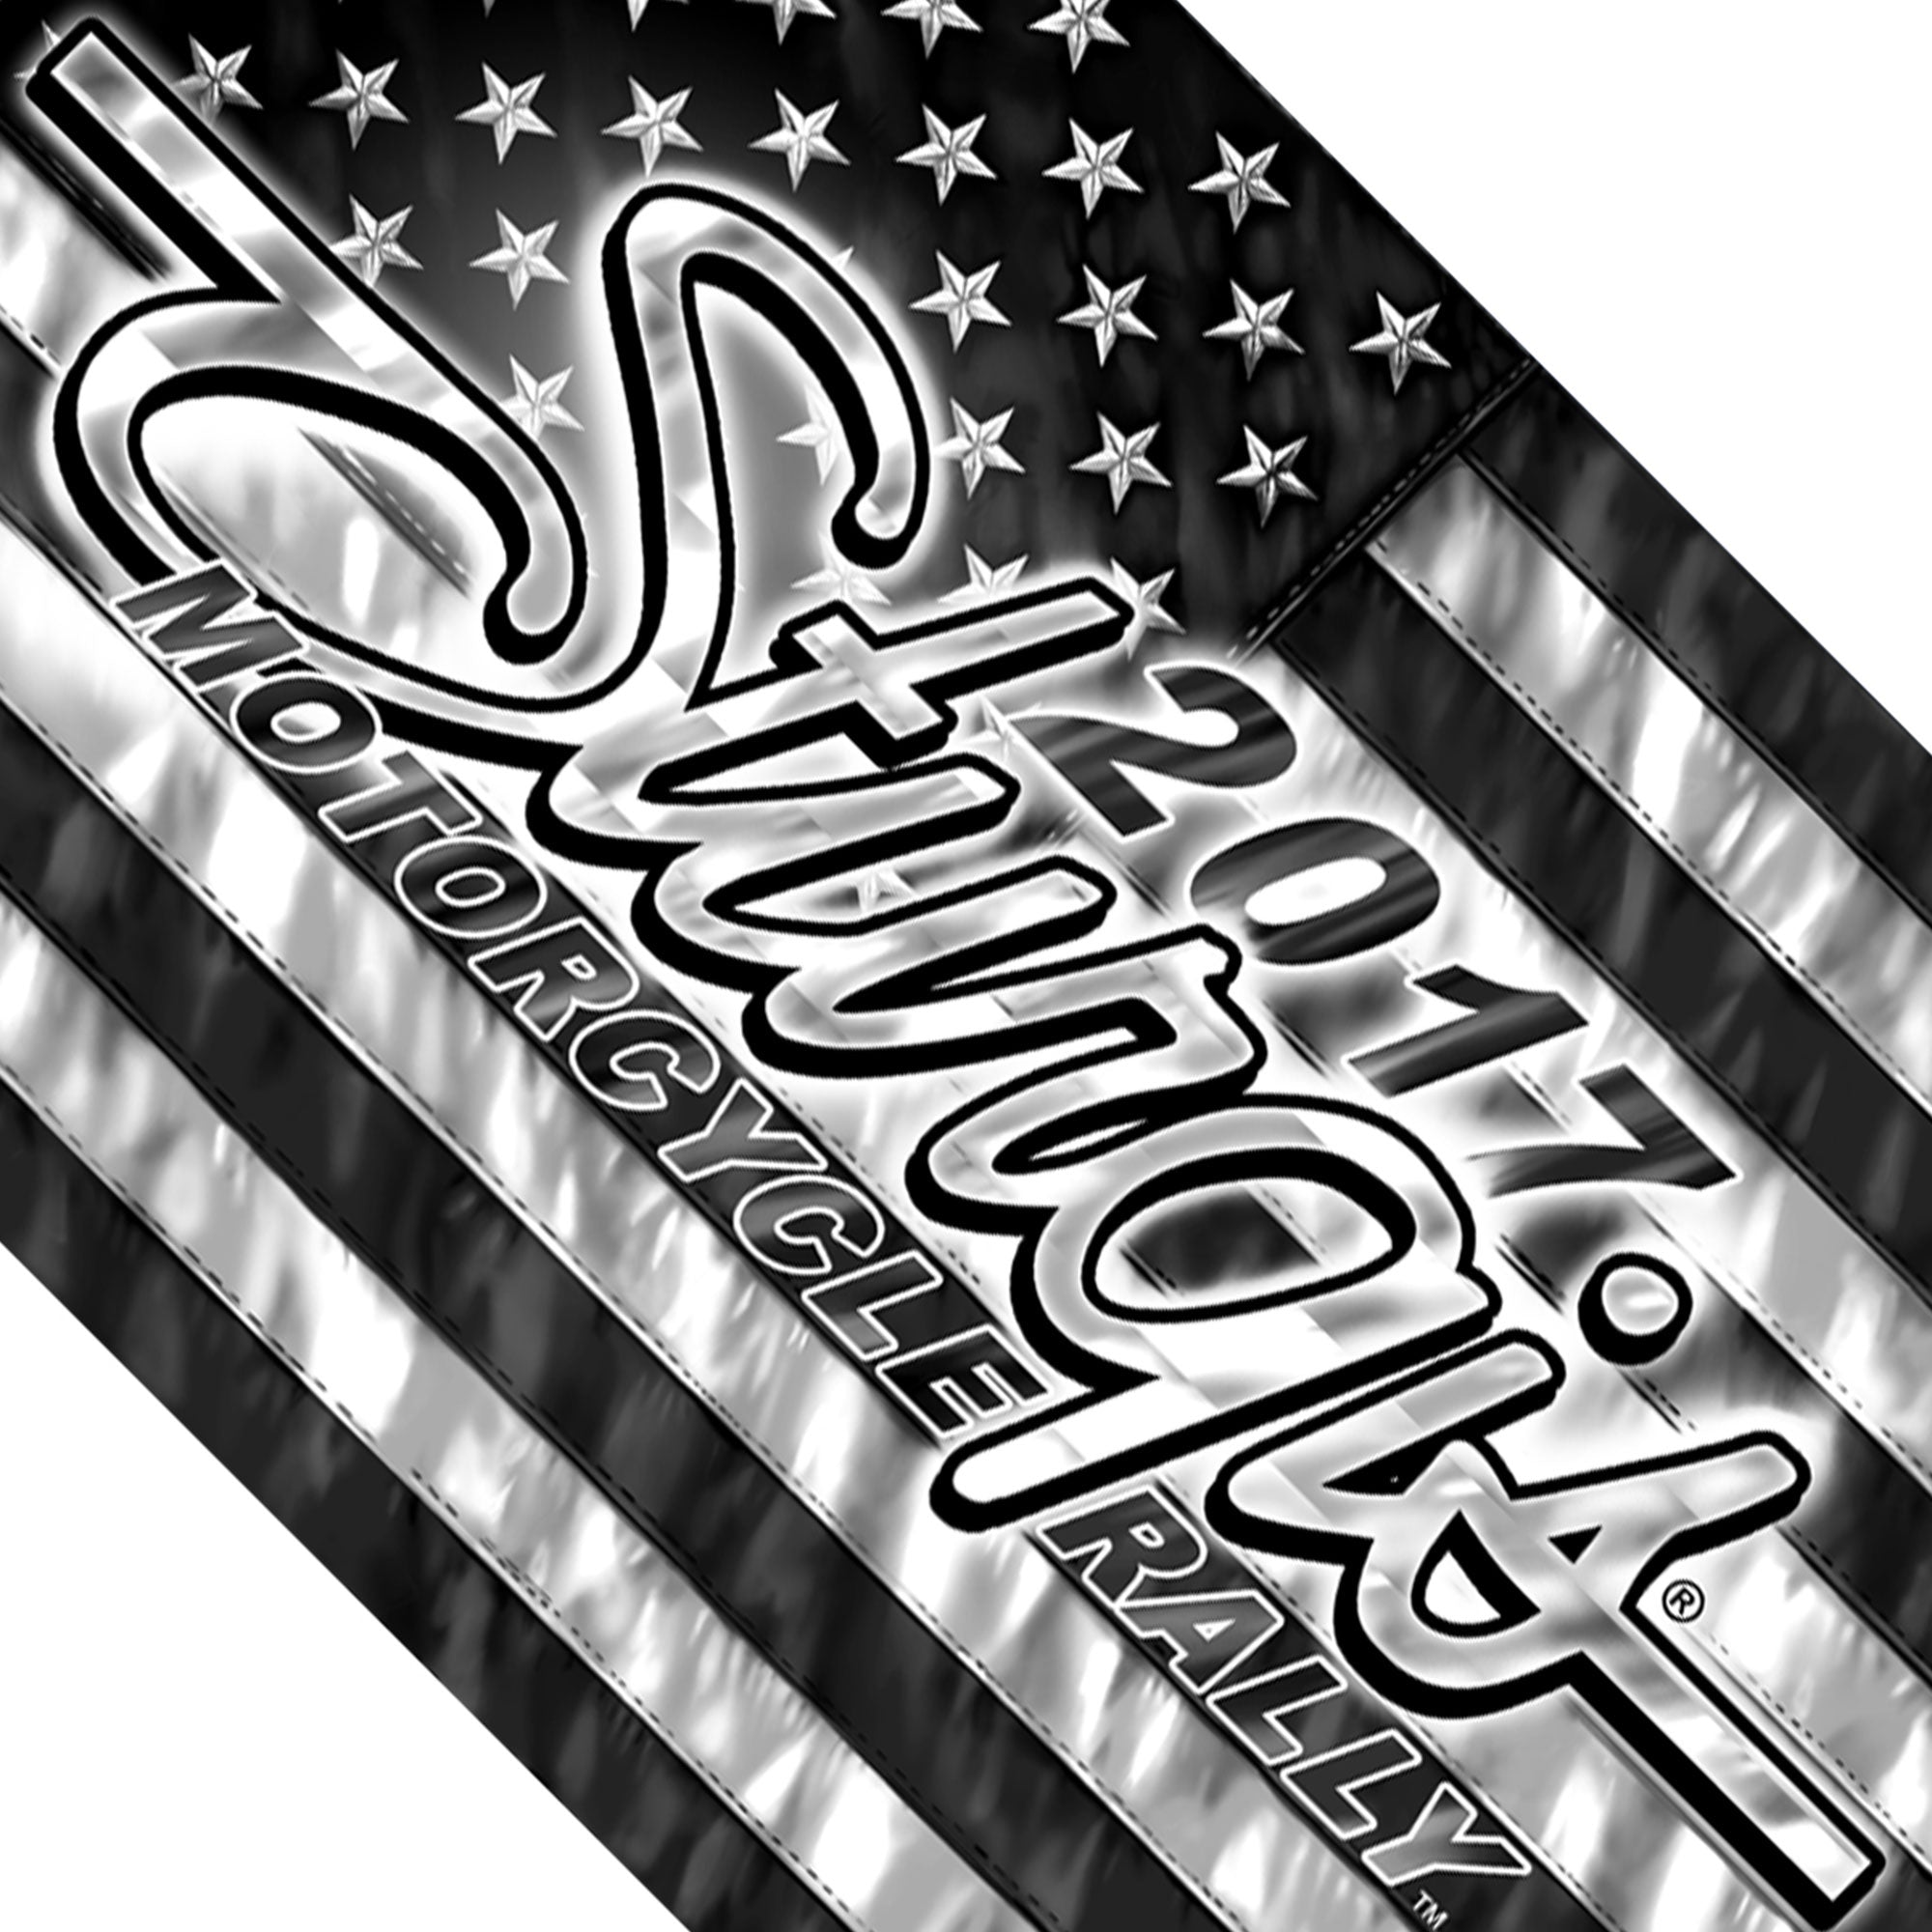 Official 2017 Sturgis Motorcycle Rally American Black and White Flag